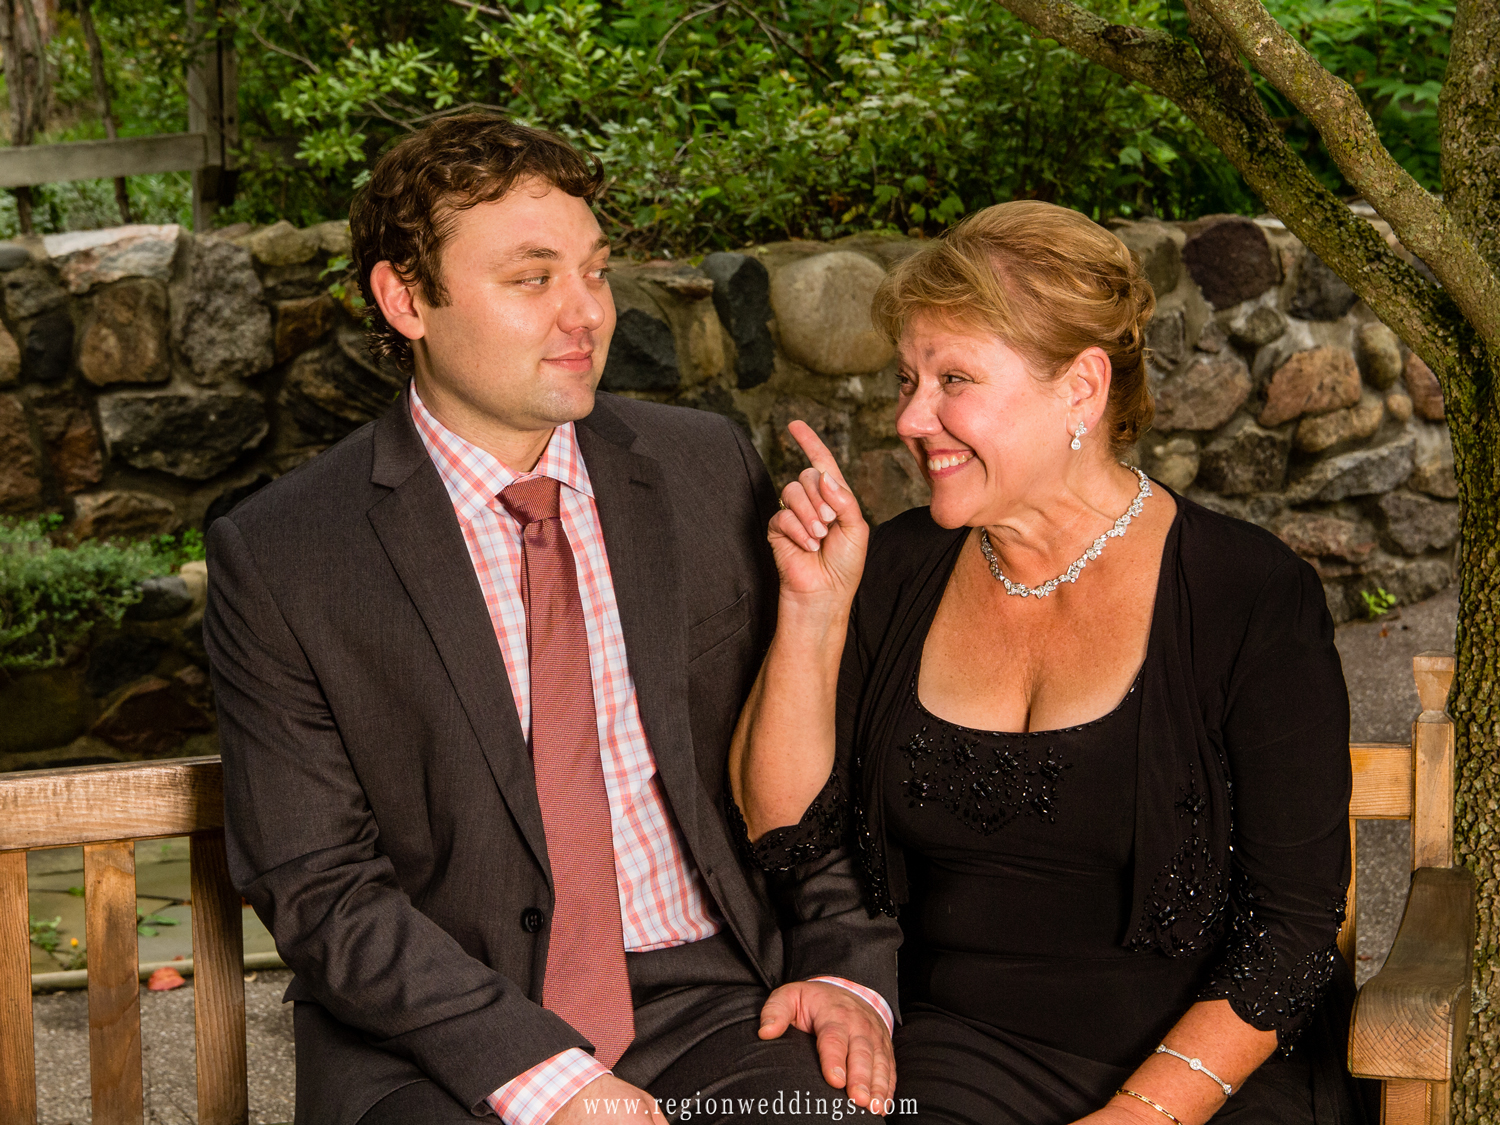 The groom's mother gives some last minute advice to her son just before the wedding ceremony.